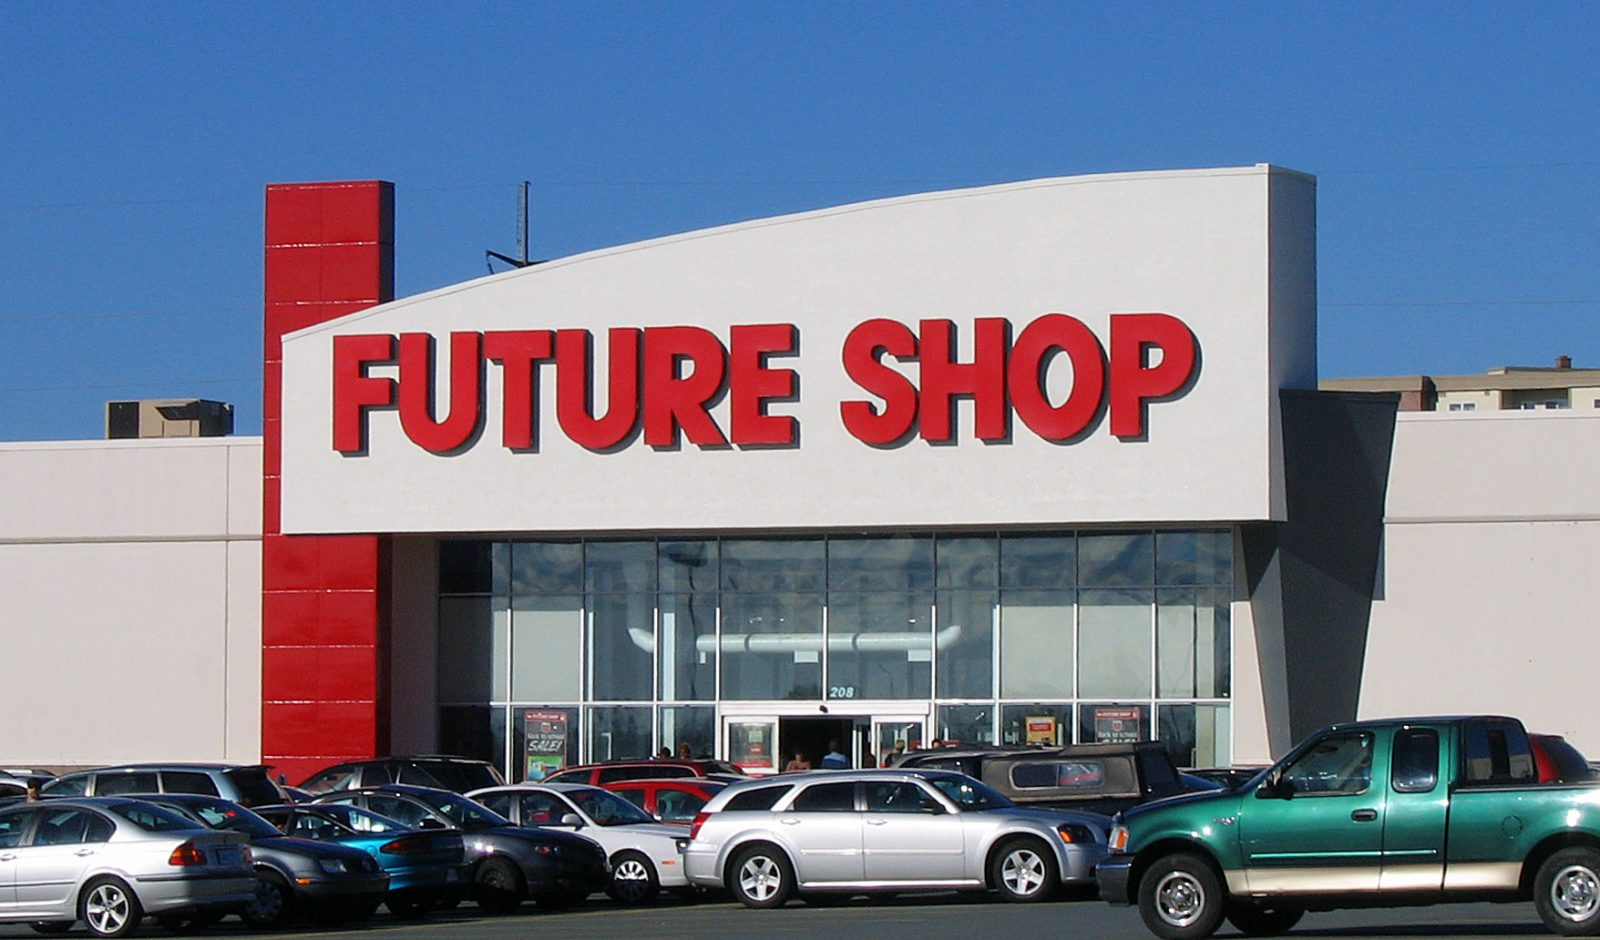 Confusion on Future Shop construction clarified